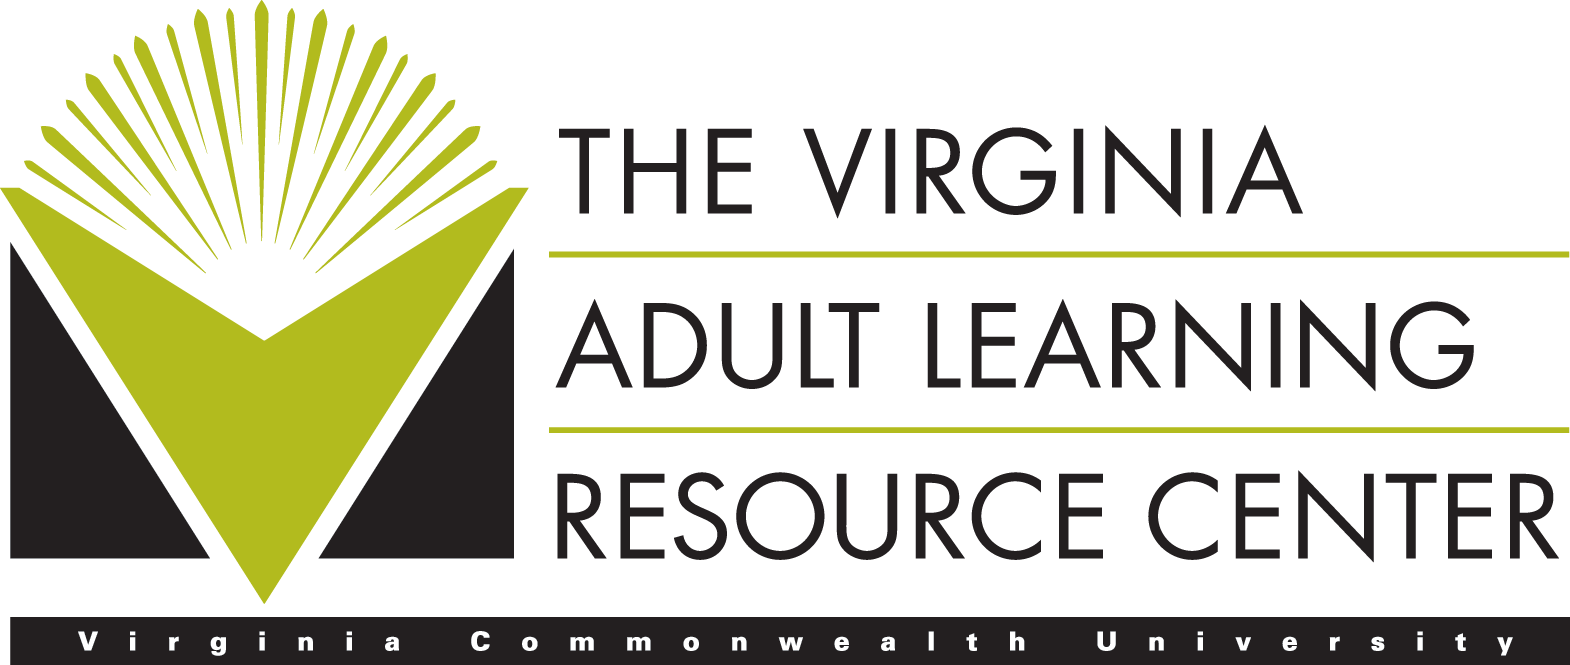 Virginia Adult Learning Resource Center at Virginia Commonwealth University logo